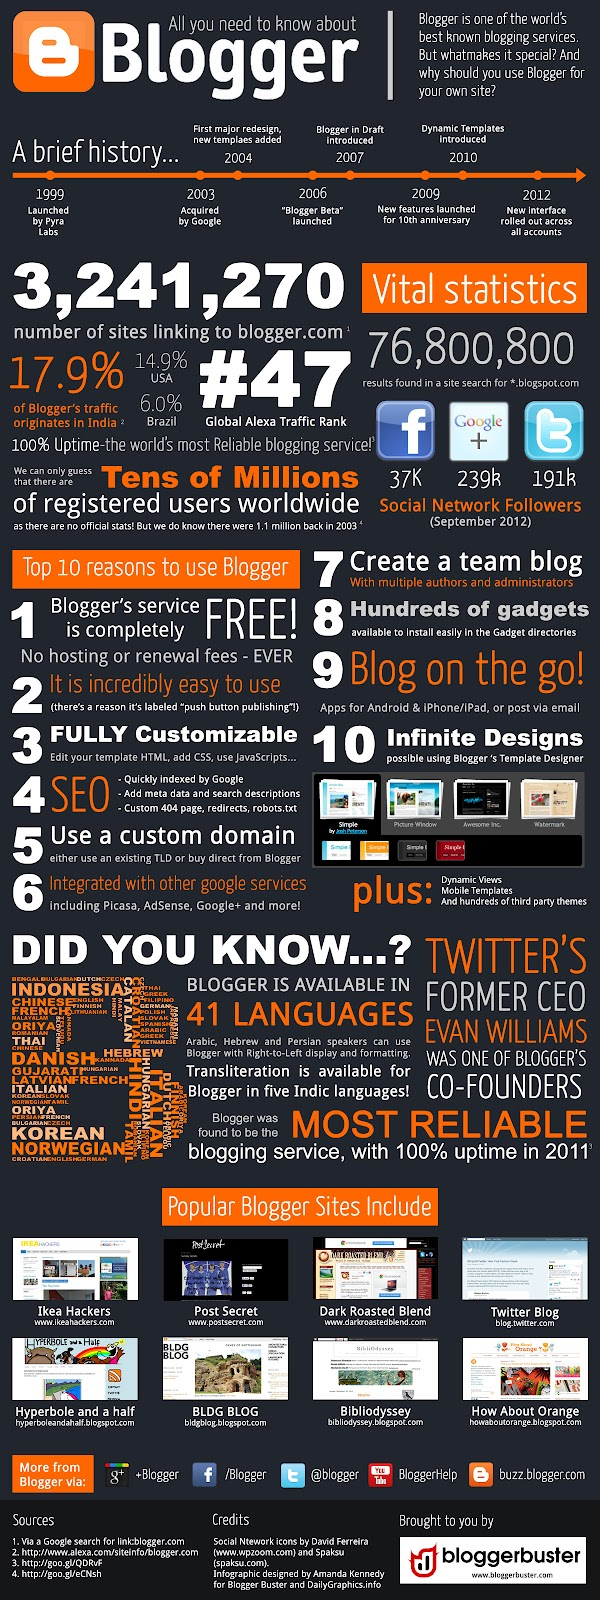 All You Need to know About Blogger